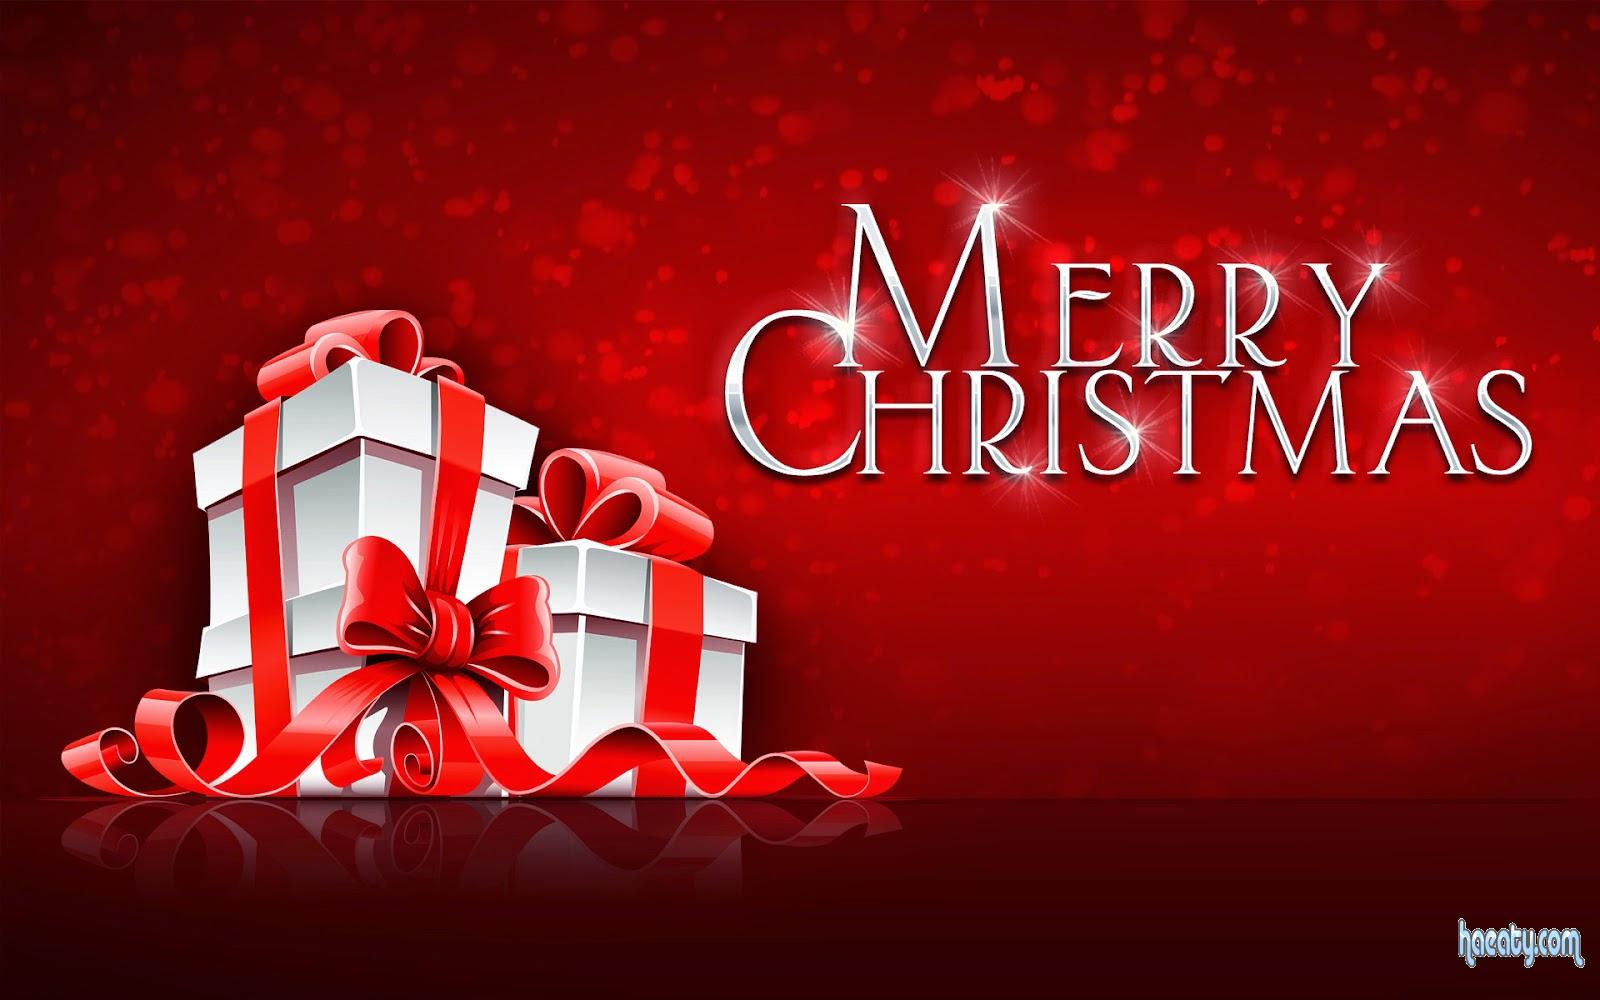 الكريسماس 2016-Merry-Christmas-and-Happy-new-year-2016 1450540949271.jpg